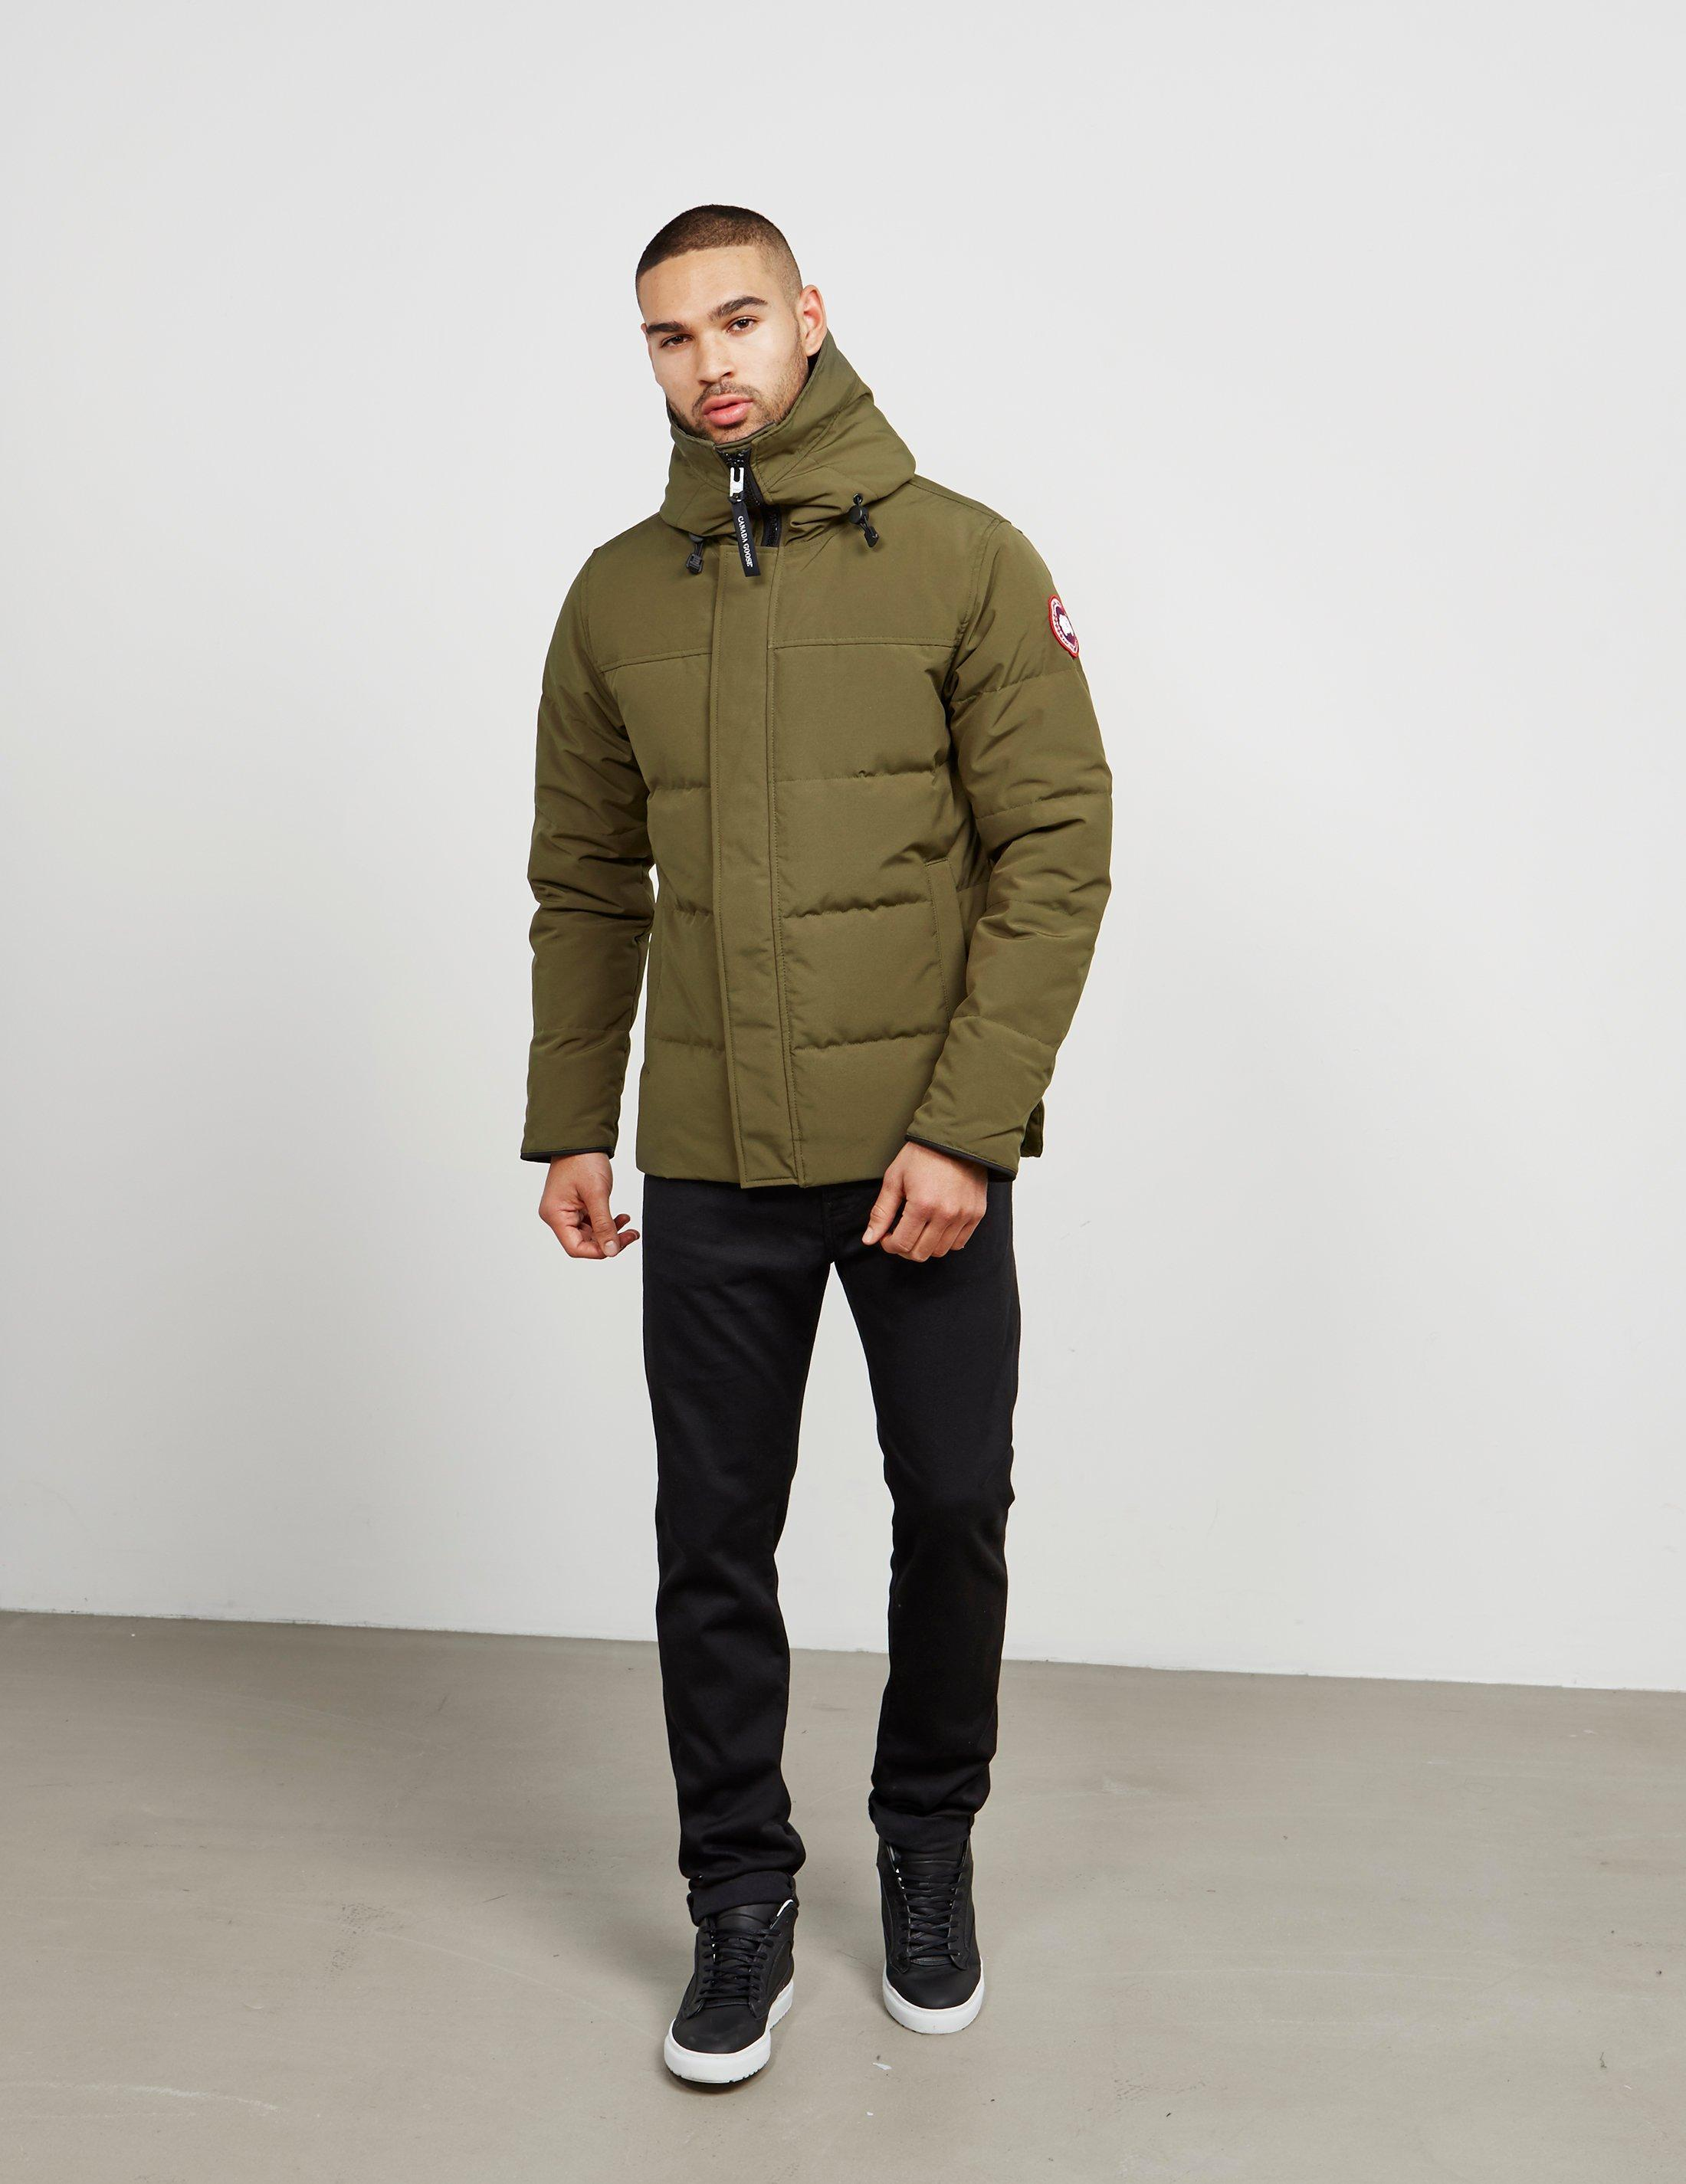 4b924cf349c0 Lyst - Canada Goose Macmillan Padded Parka Jacket Green in Green for Men -  Save 22%